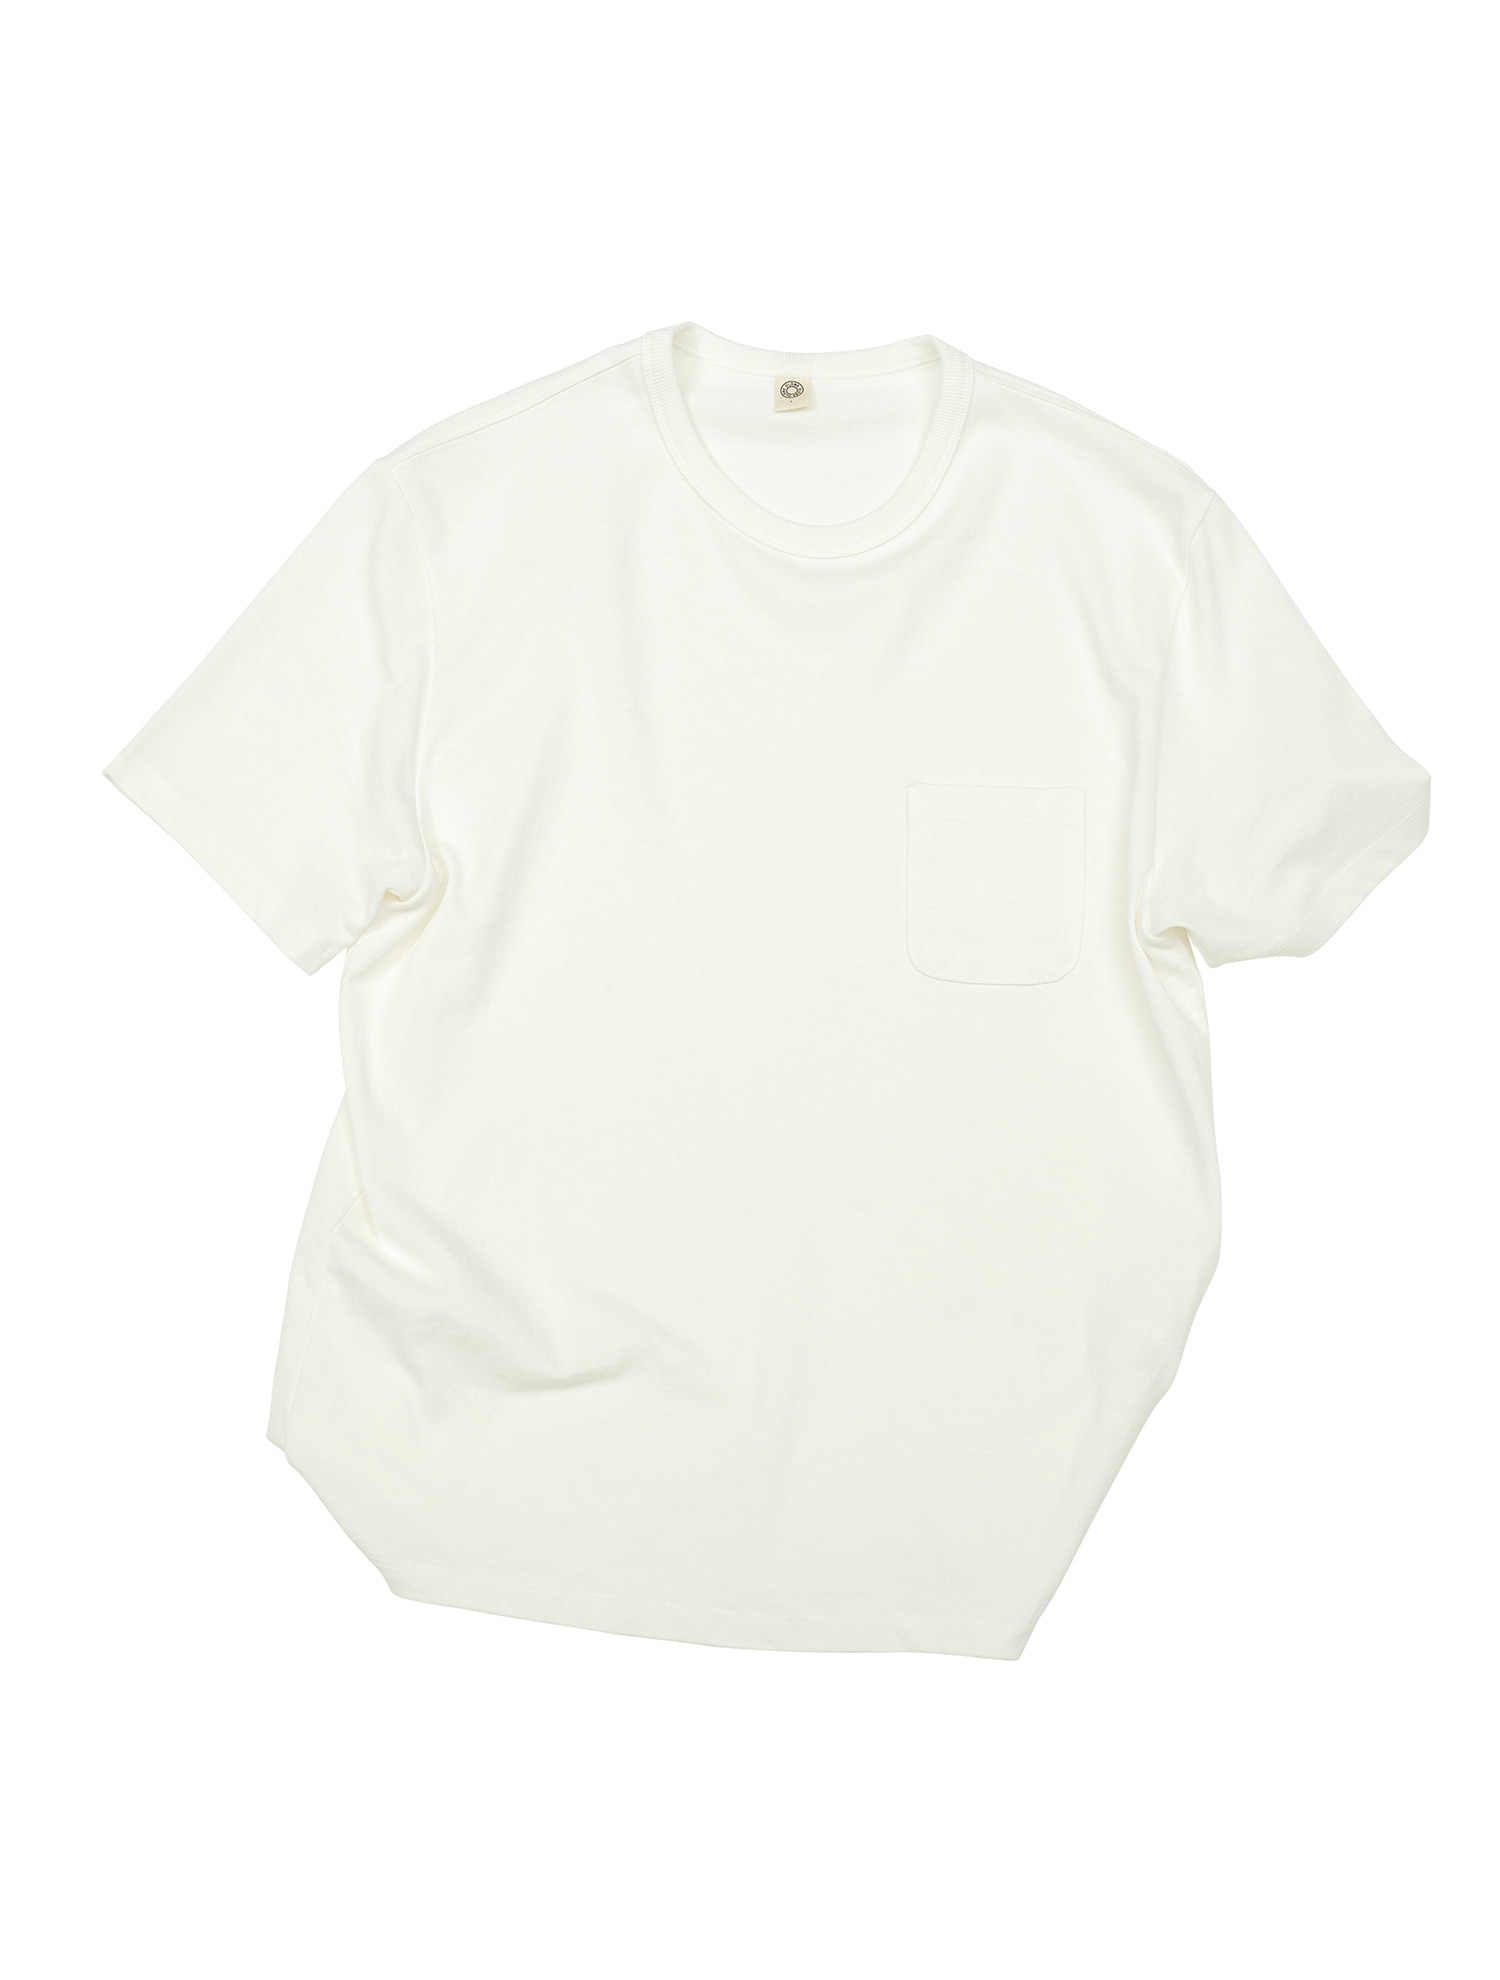 [올드비] GEN COTTON CREWNECK T-SHIRT OFF WHITE